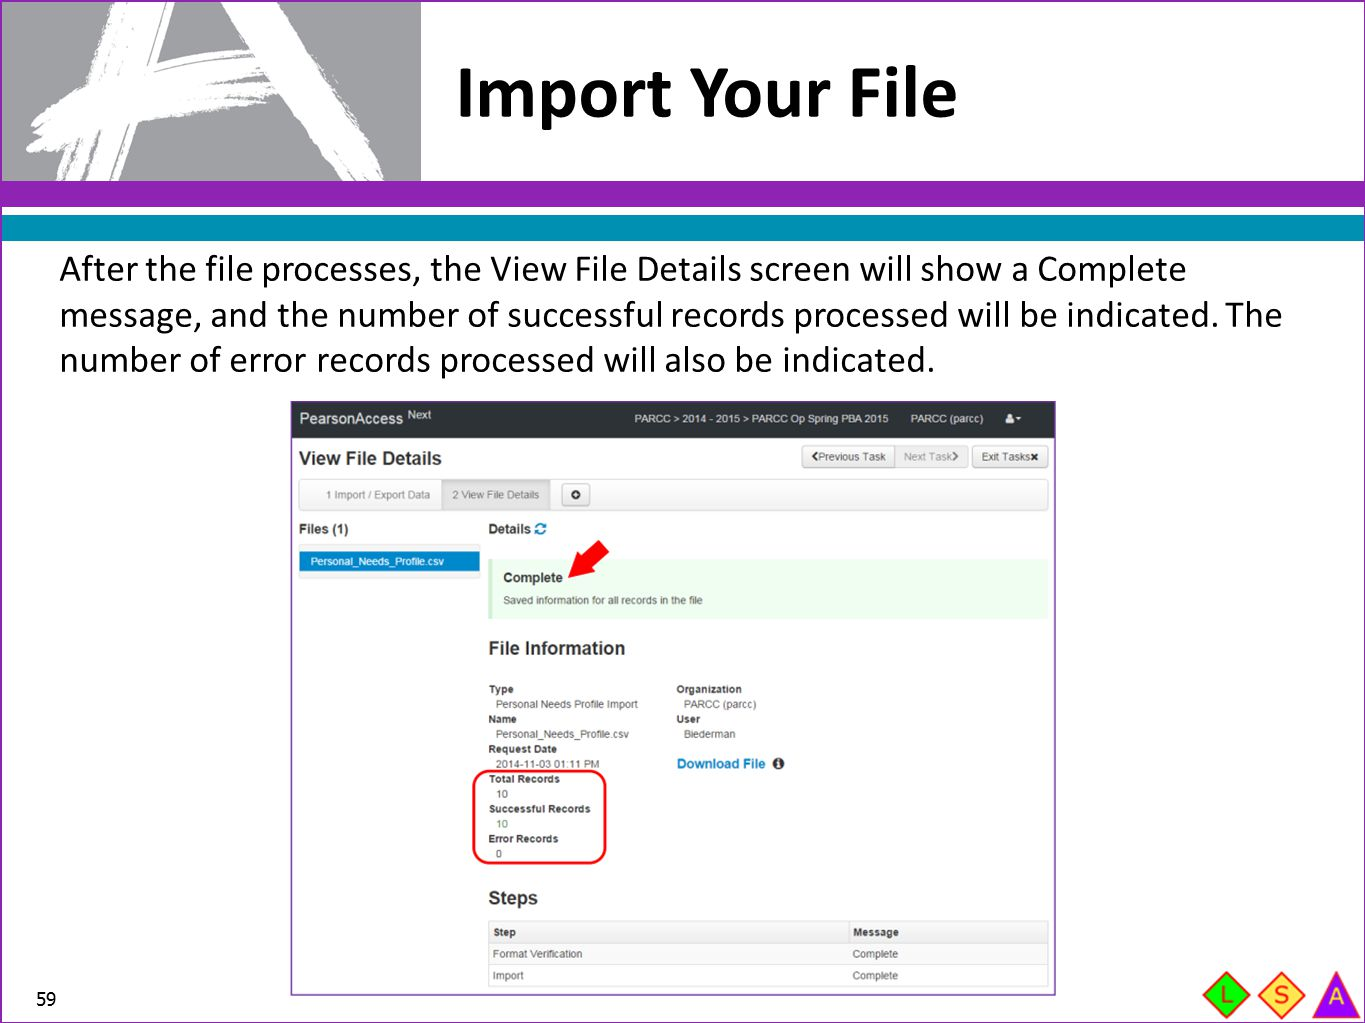 Import Your File